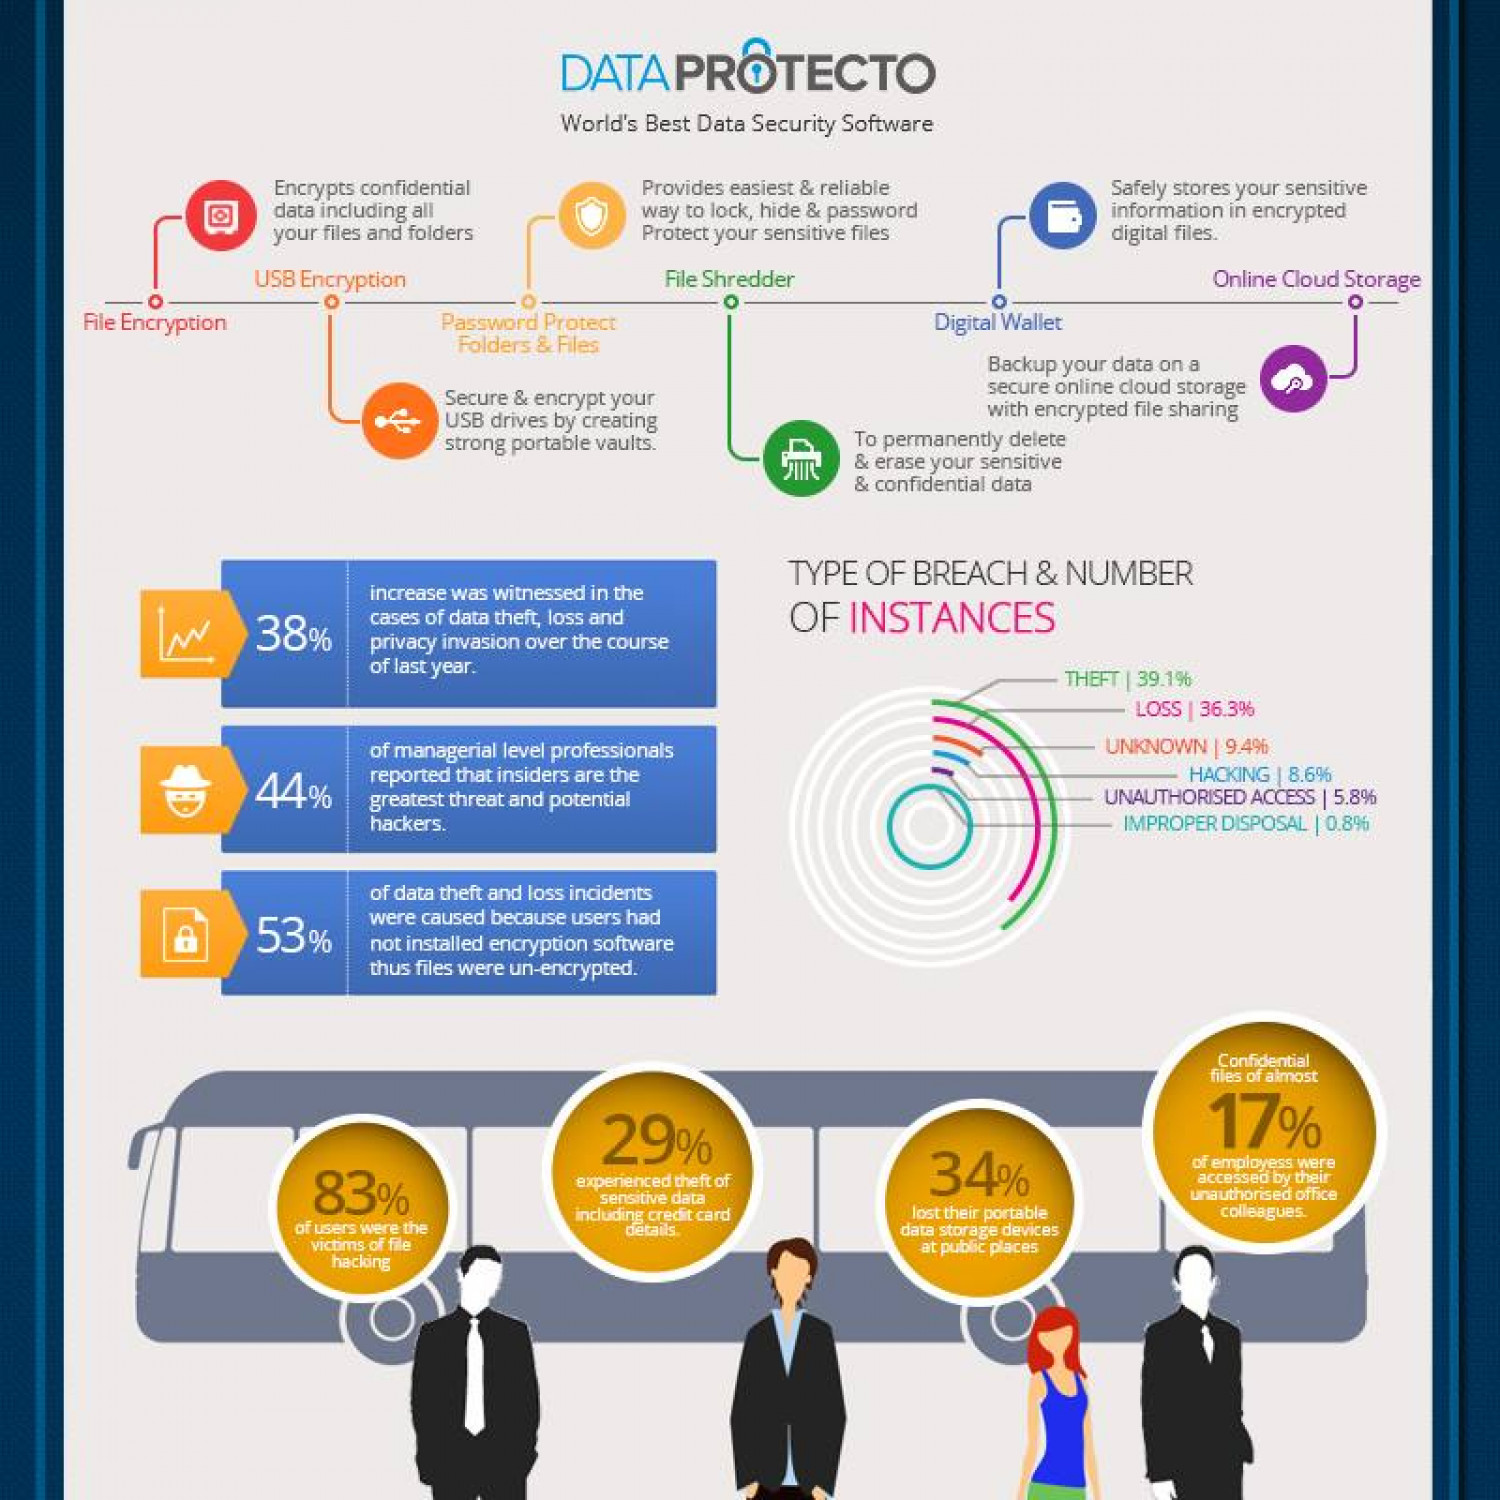 Data Protecto: World's best file encryption software Infographic